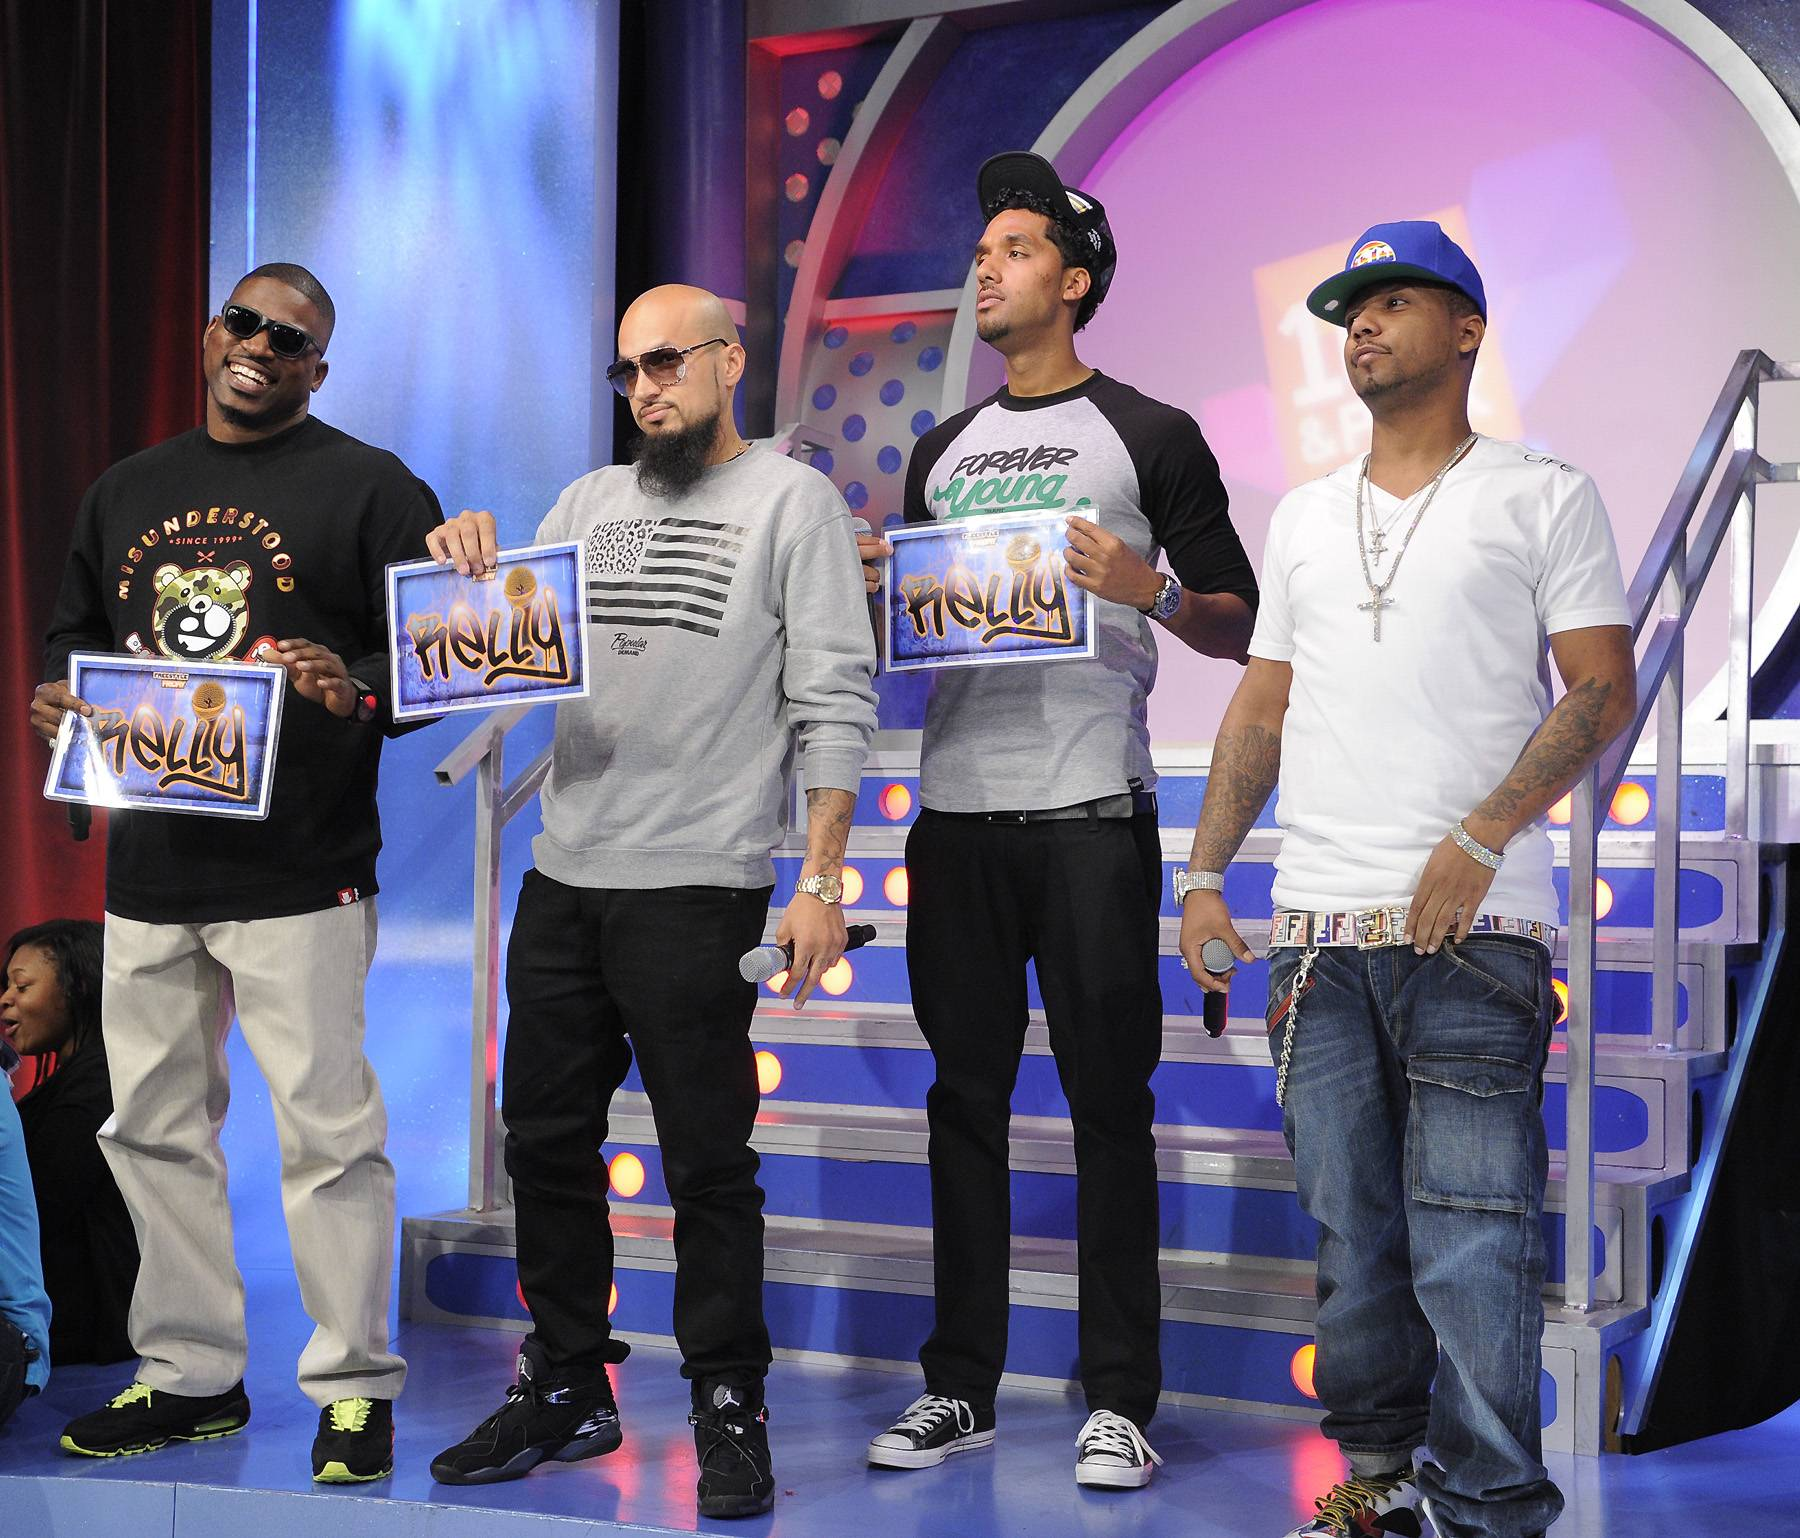 Survey Says, Relly! - Freestyle Friday judges David Banner, Cool and Dre and Juelz Santana at 106 & Park, April 6, 2012. (photo: John Ricard / BET)